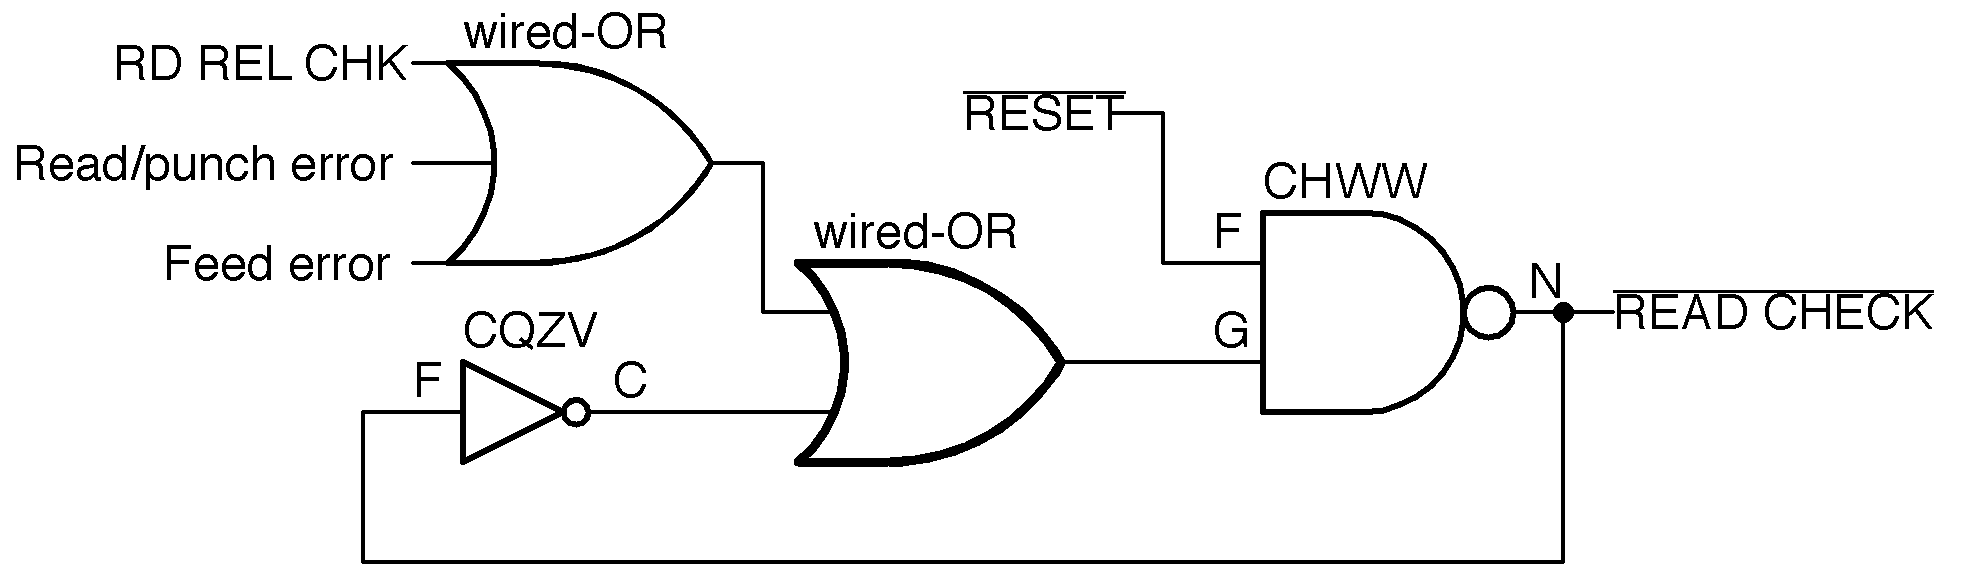 Ken Shirriffs Blog 2018 Latching Circuit Diagram The Read Check Latch Redrawn With Modern Symbols